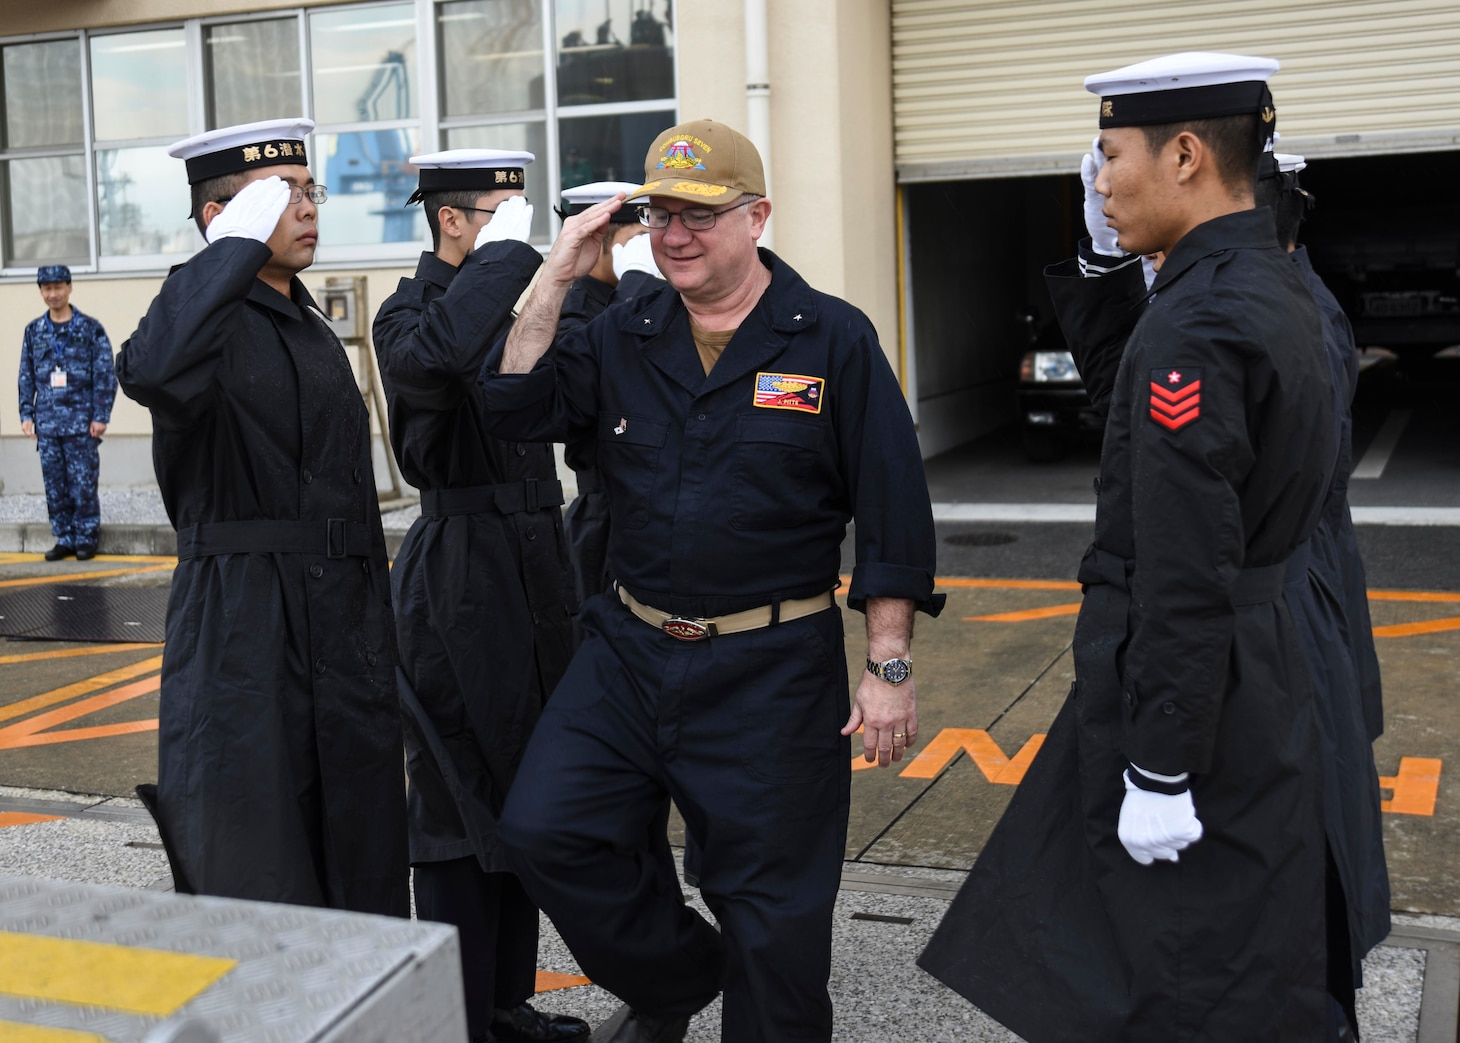 FLEET ACTIVITIES YOKOSUKA, Japan (Oct. 19, 2018) Rear Adm. Jimmy Pitts, Commander, Submarine Group 7, salutes Japan Maritime Self-Defense Force Sailors as he is whistled aboard JS Seiryu (SS-509), prior to going underway aboard the Japanese submarine. The familiarity cruise is to reinforce the submarine group's commitment to the U.S.-Japan alliance.